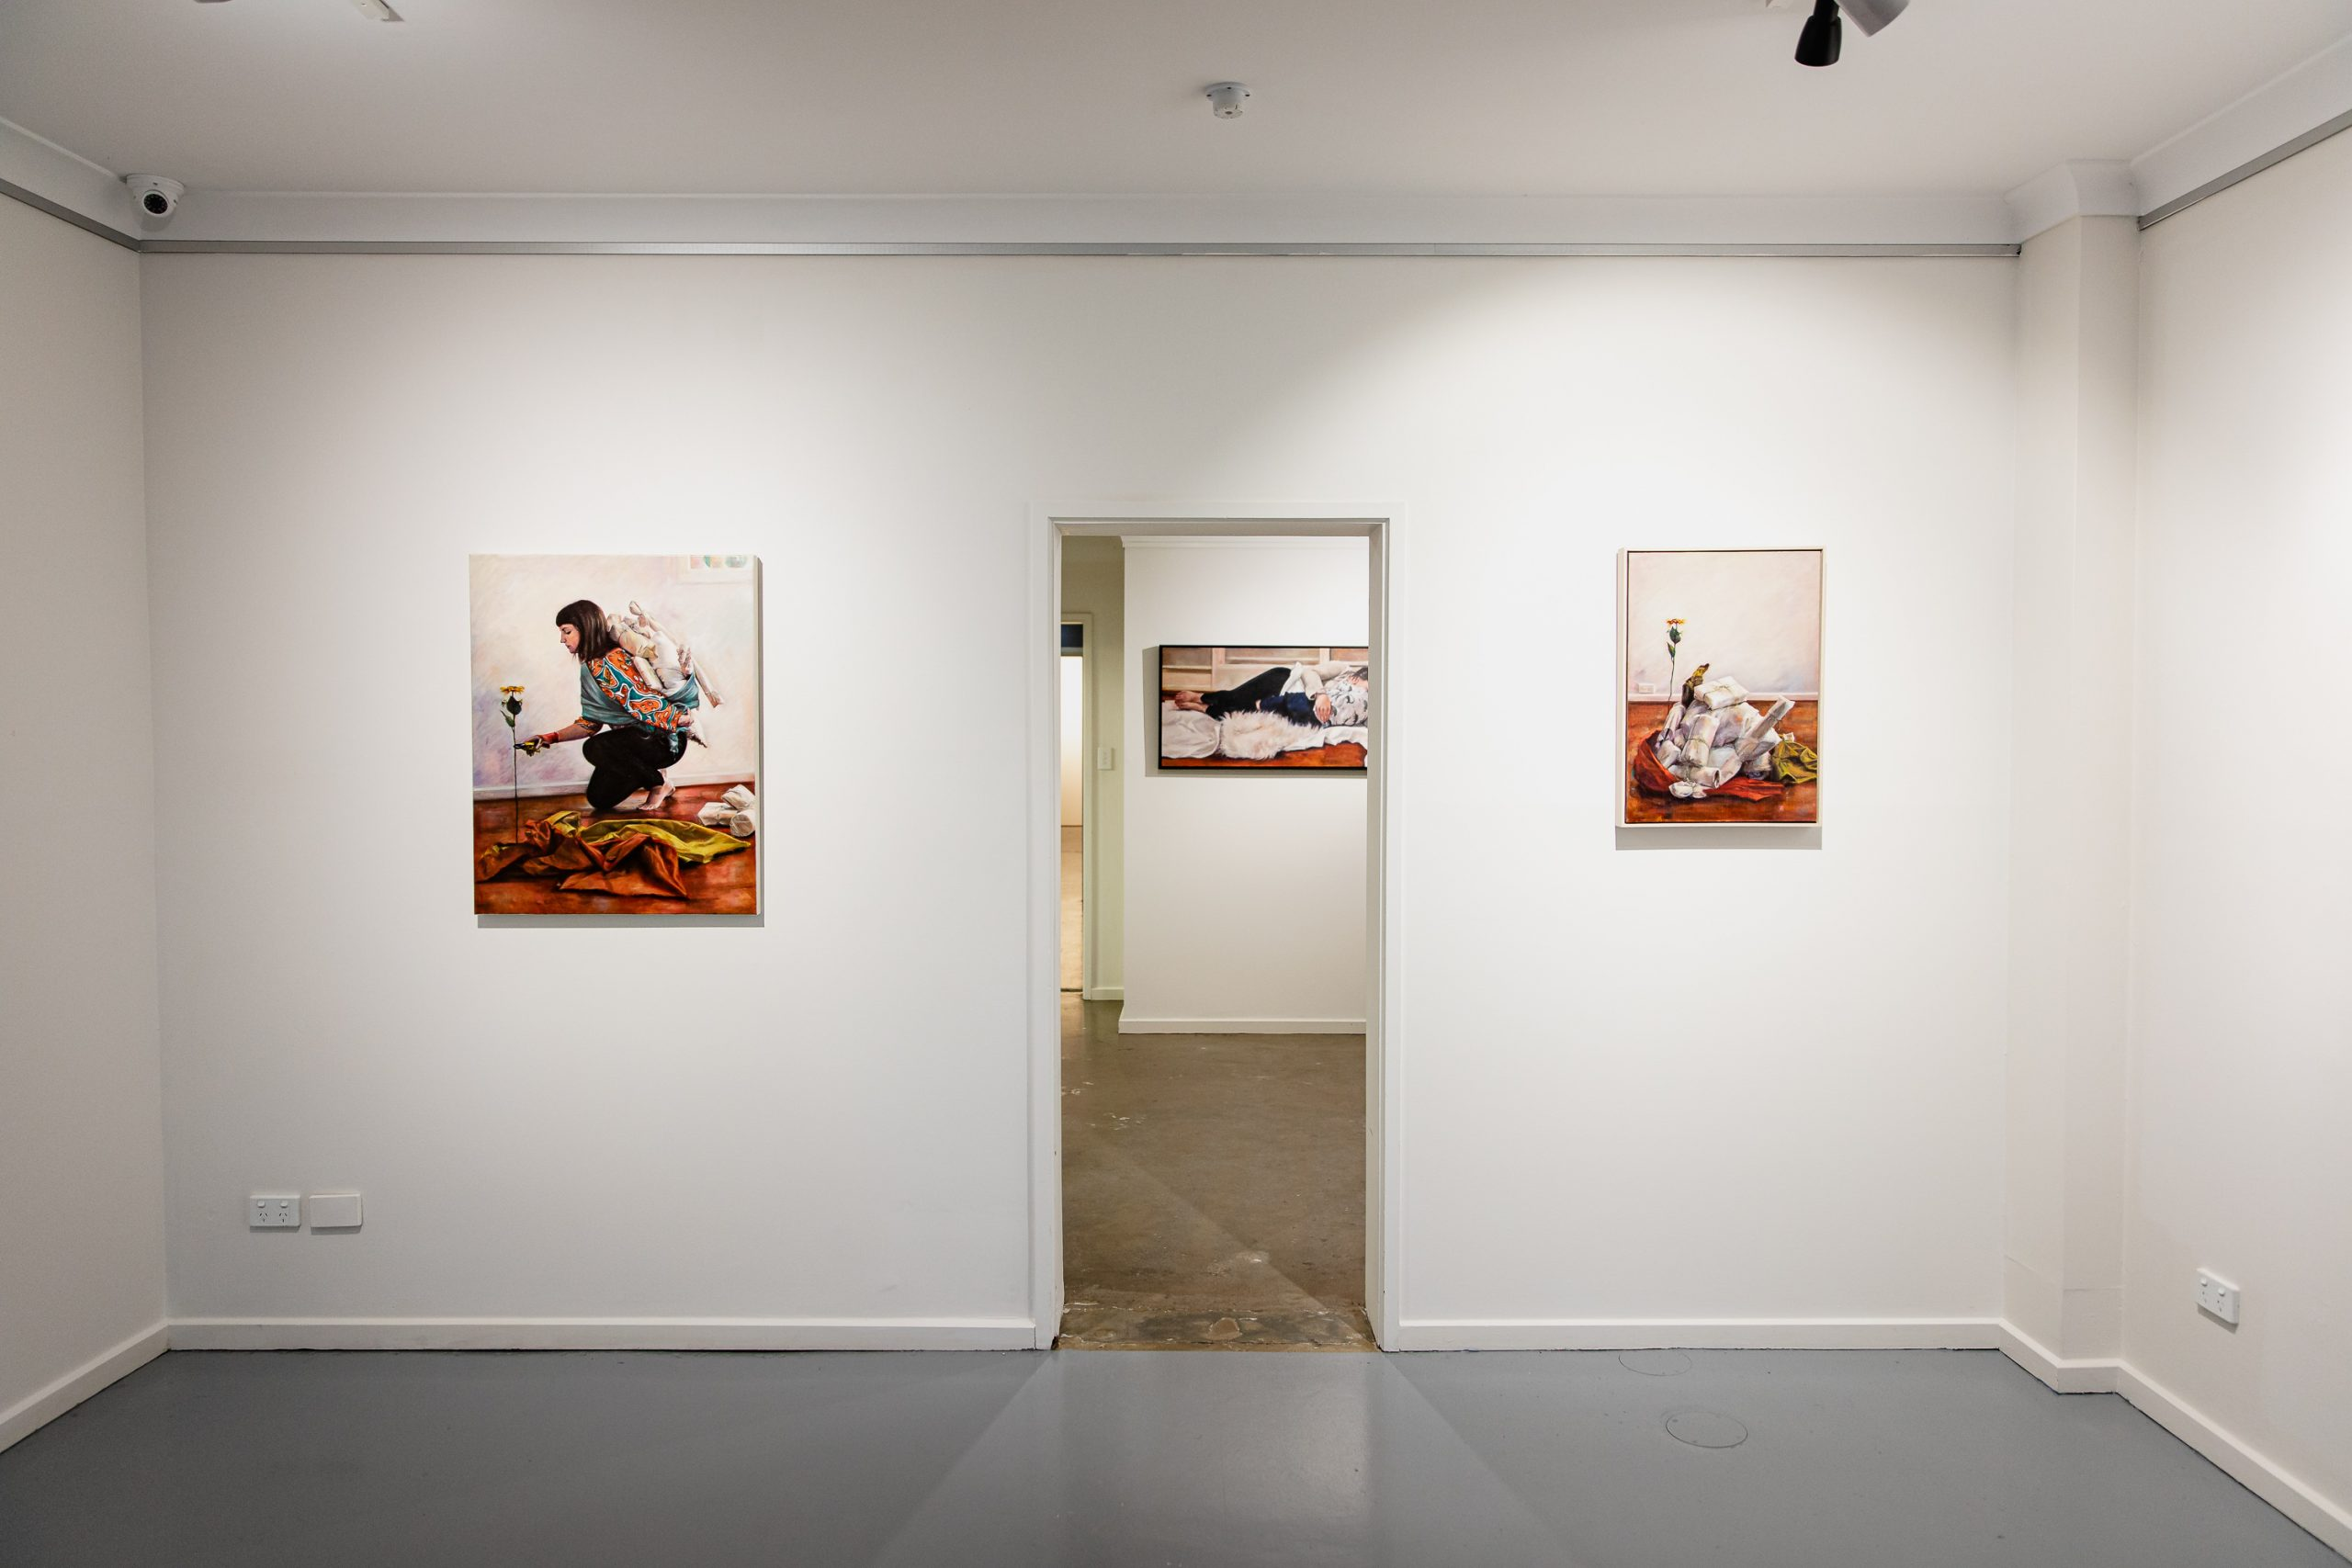 Installation view of 'Bundle', Praxis Front Gallery.  Photograph by Rosina Possingham, used with permission.